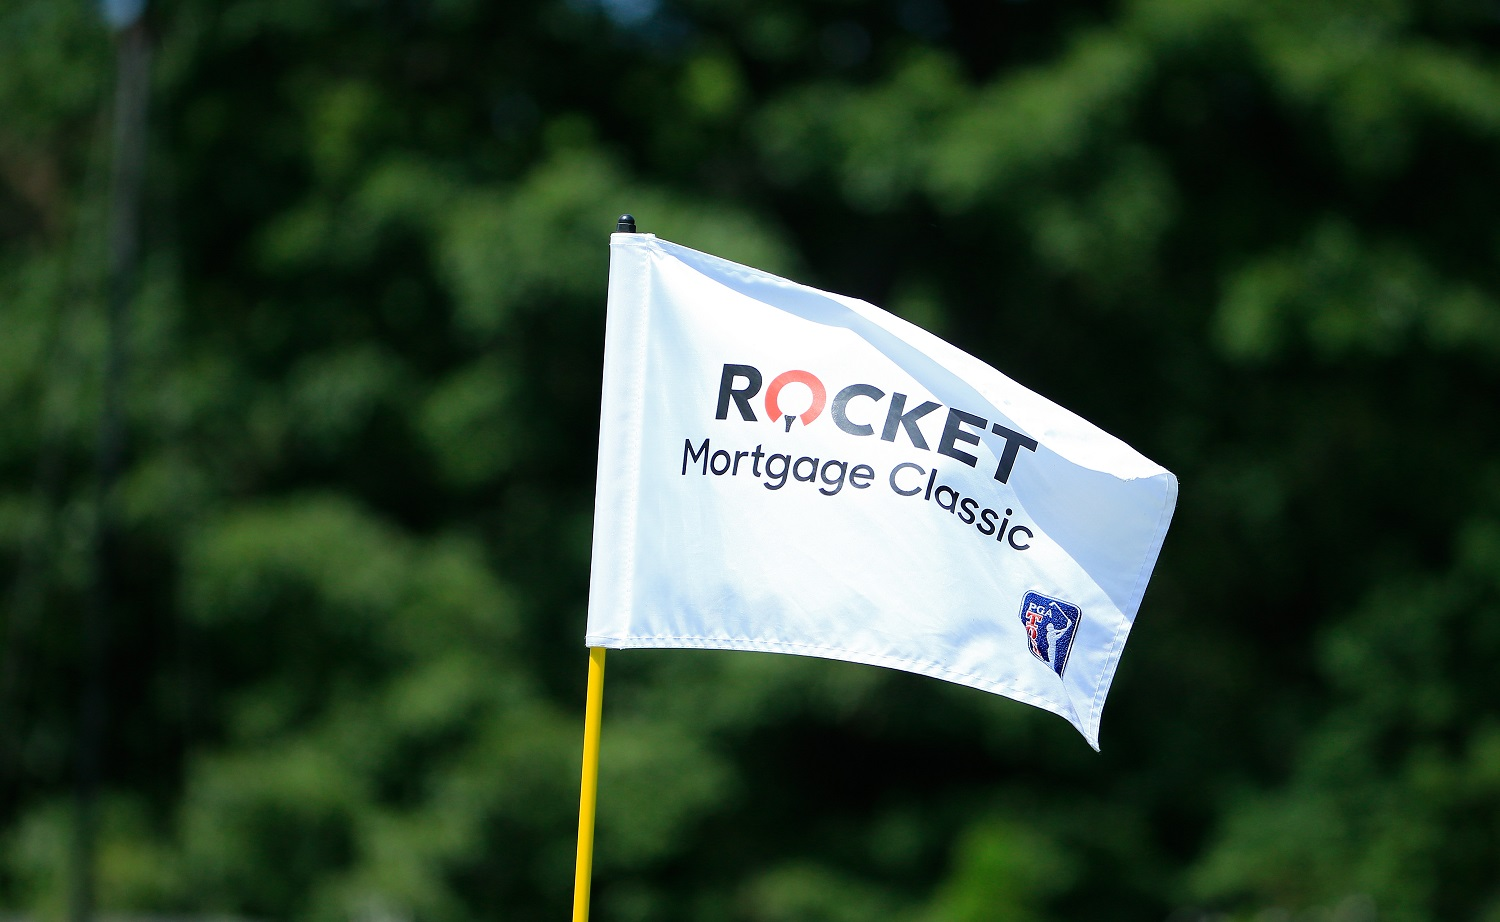 PGA Tour Rocket Mortgage Classic